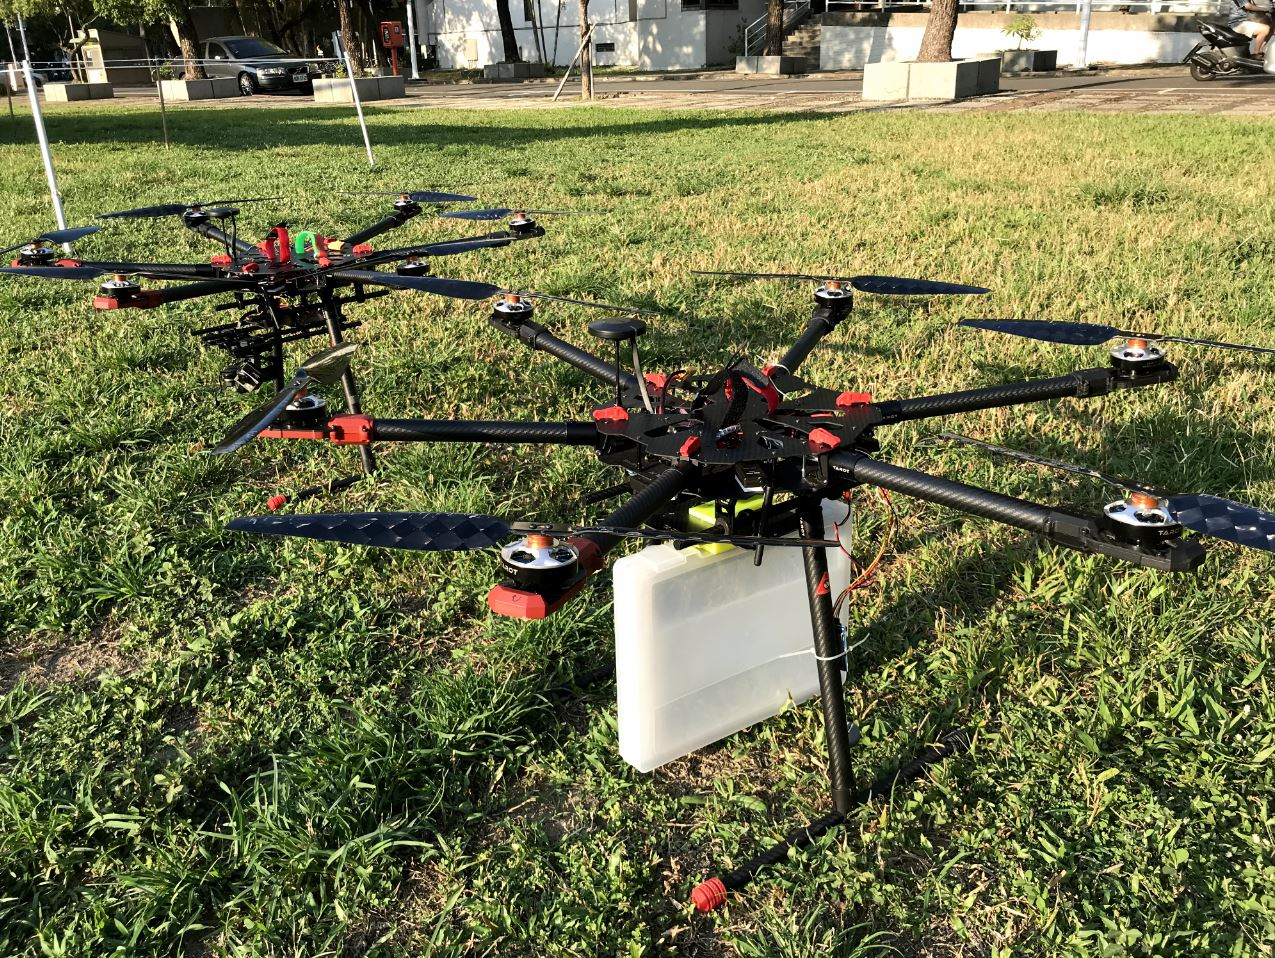 Intelligent Drone for Campus